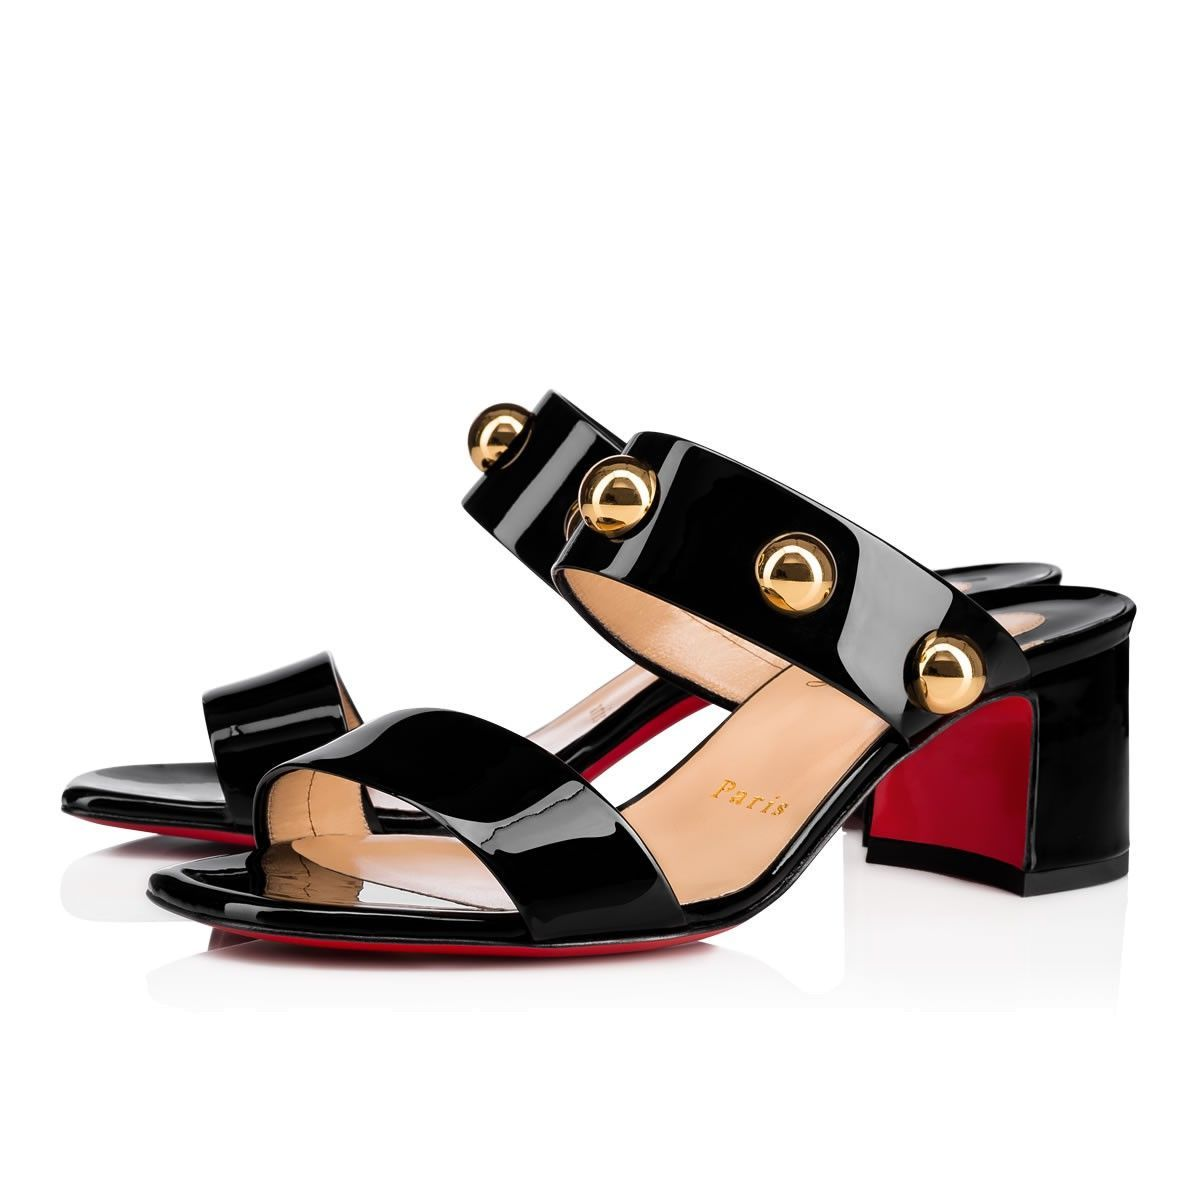 Simple Bille 55 Black/Gold Patent Leather - Women Shoes - Christian  Louboutin